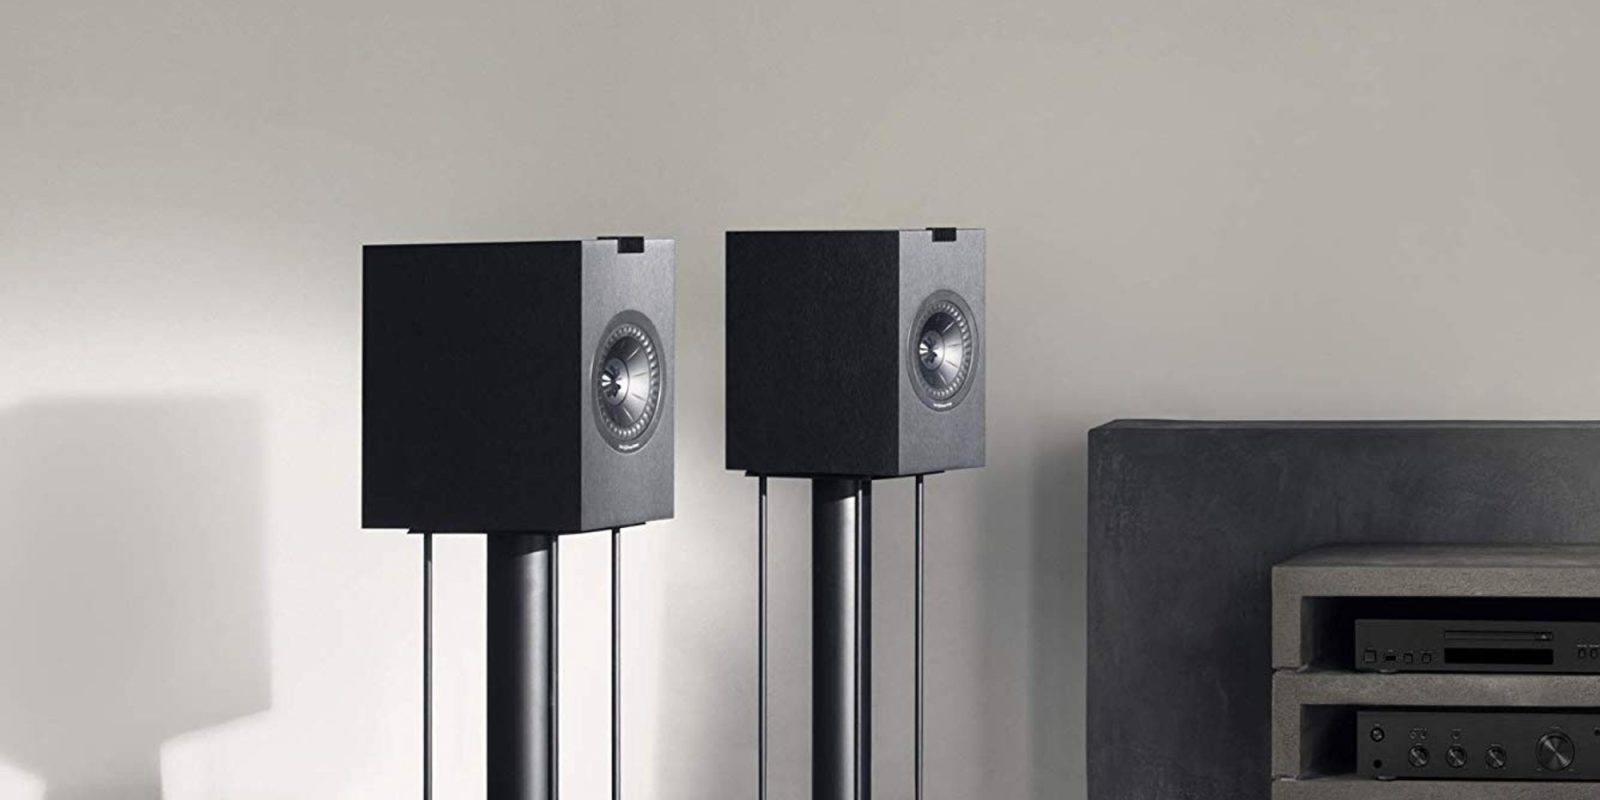 KEF - 9to5Toys